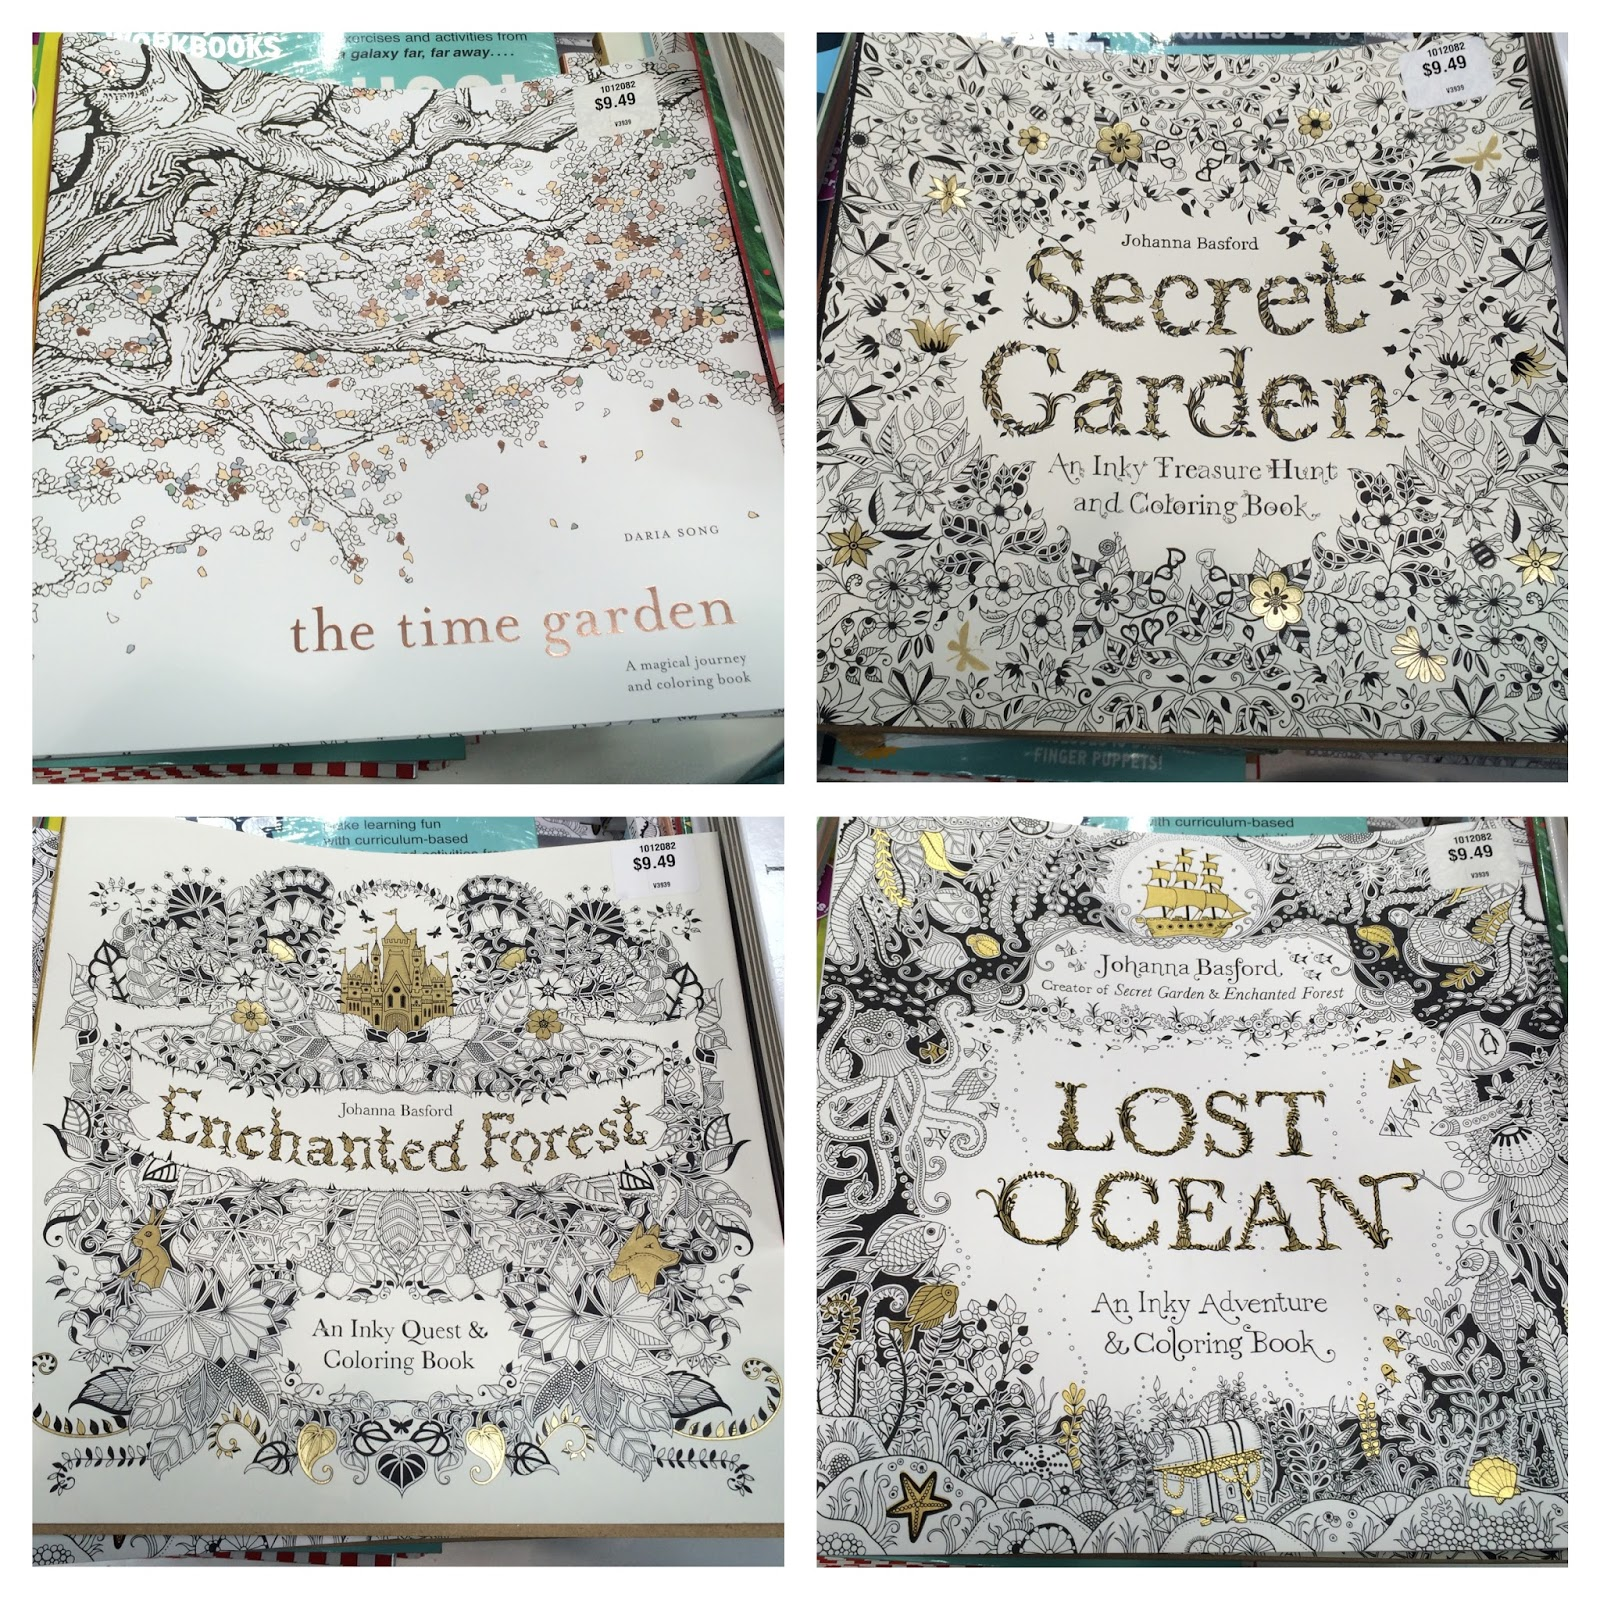 Coloring Books From Johanna Bedford Like Secret Garden Enchanted Forest And Lost Ocean Or The Time By Daria Song I Picked Up